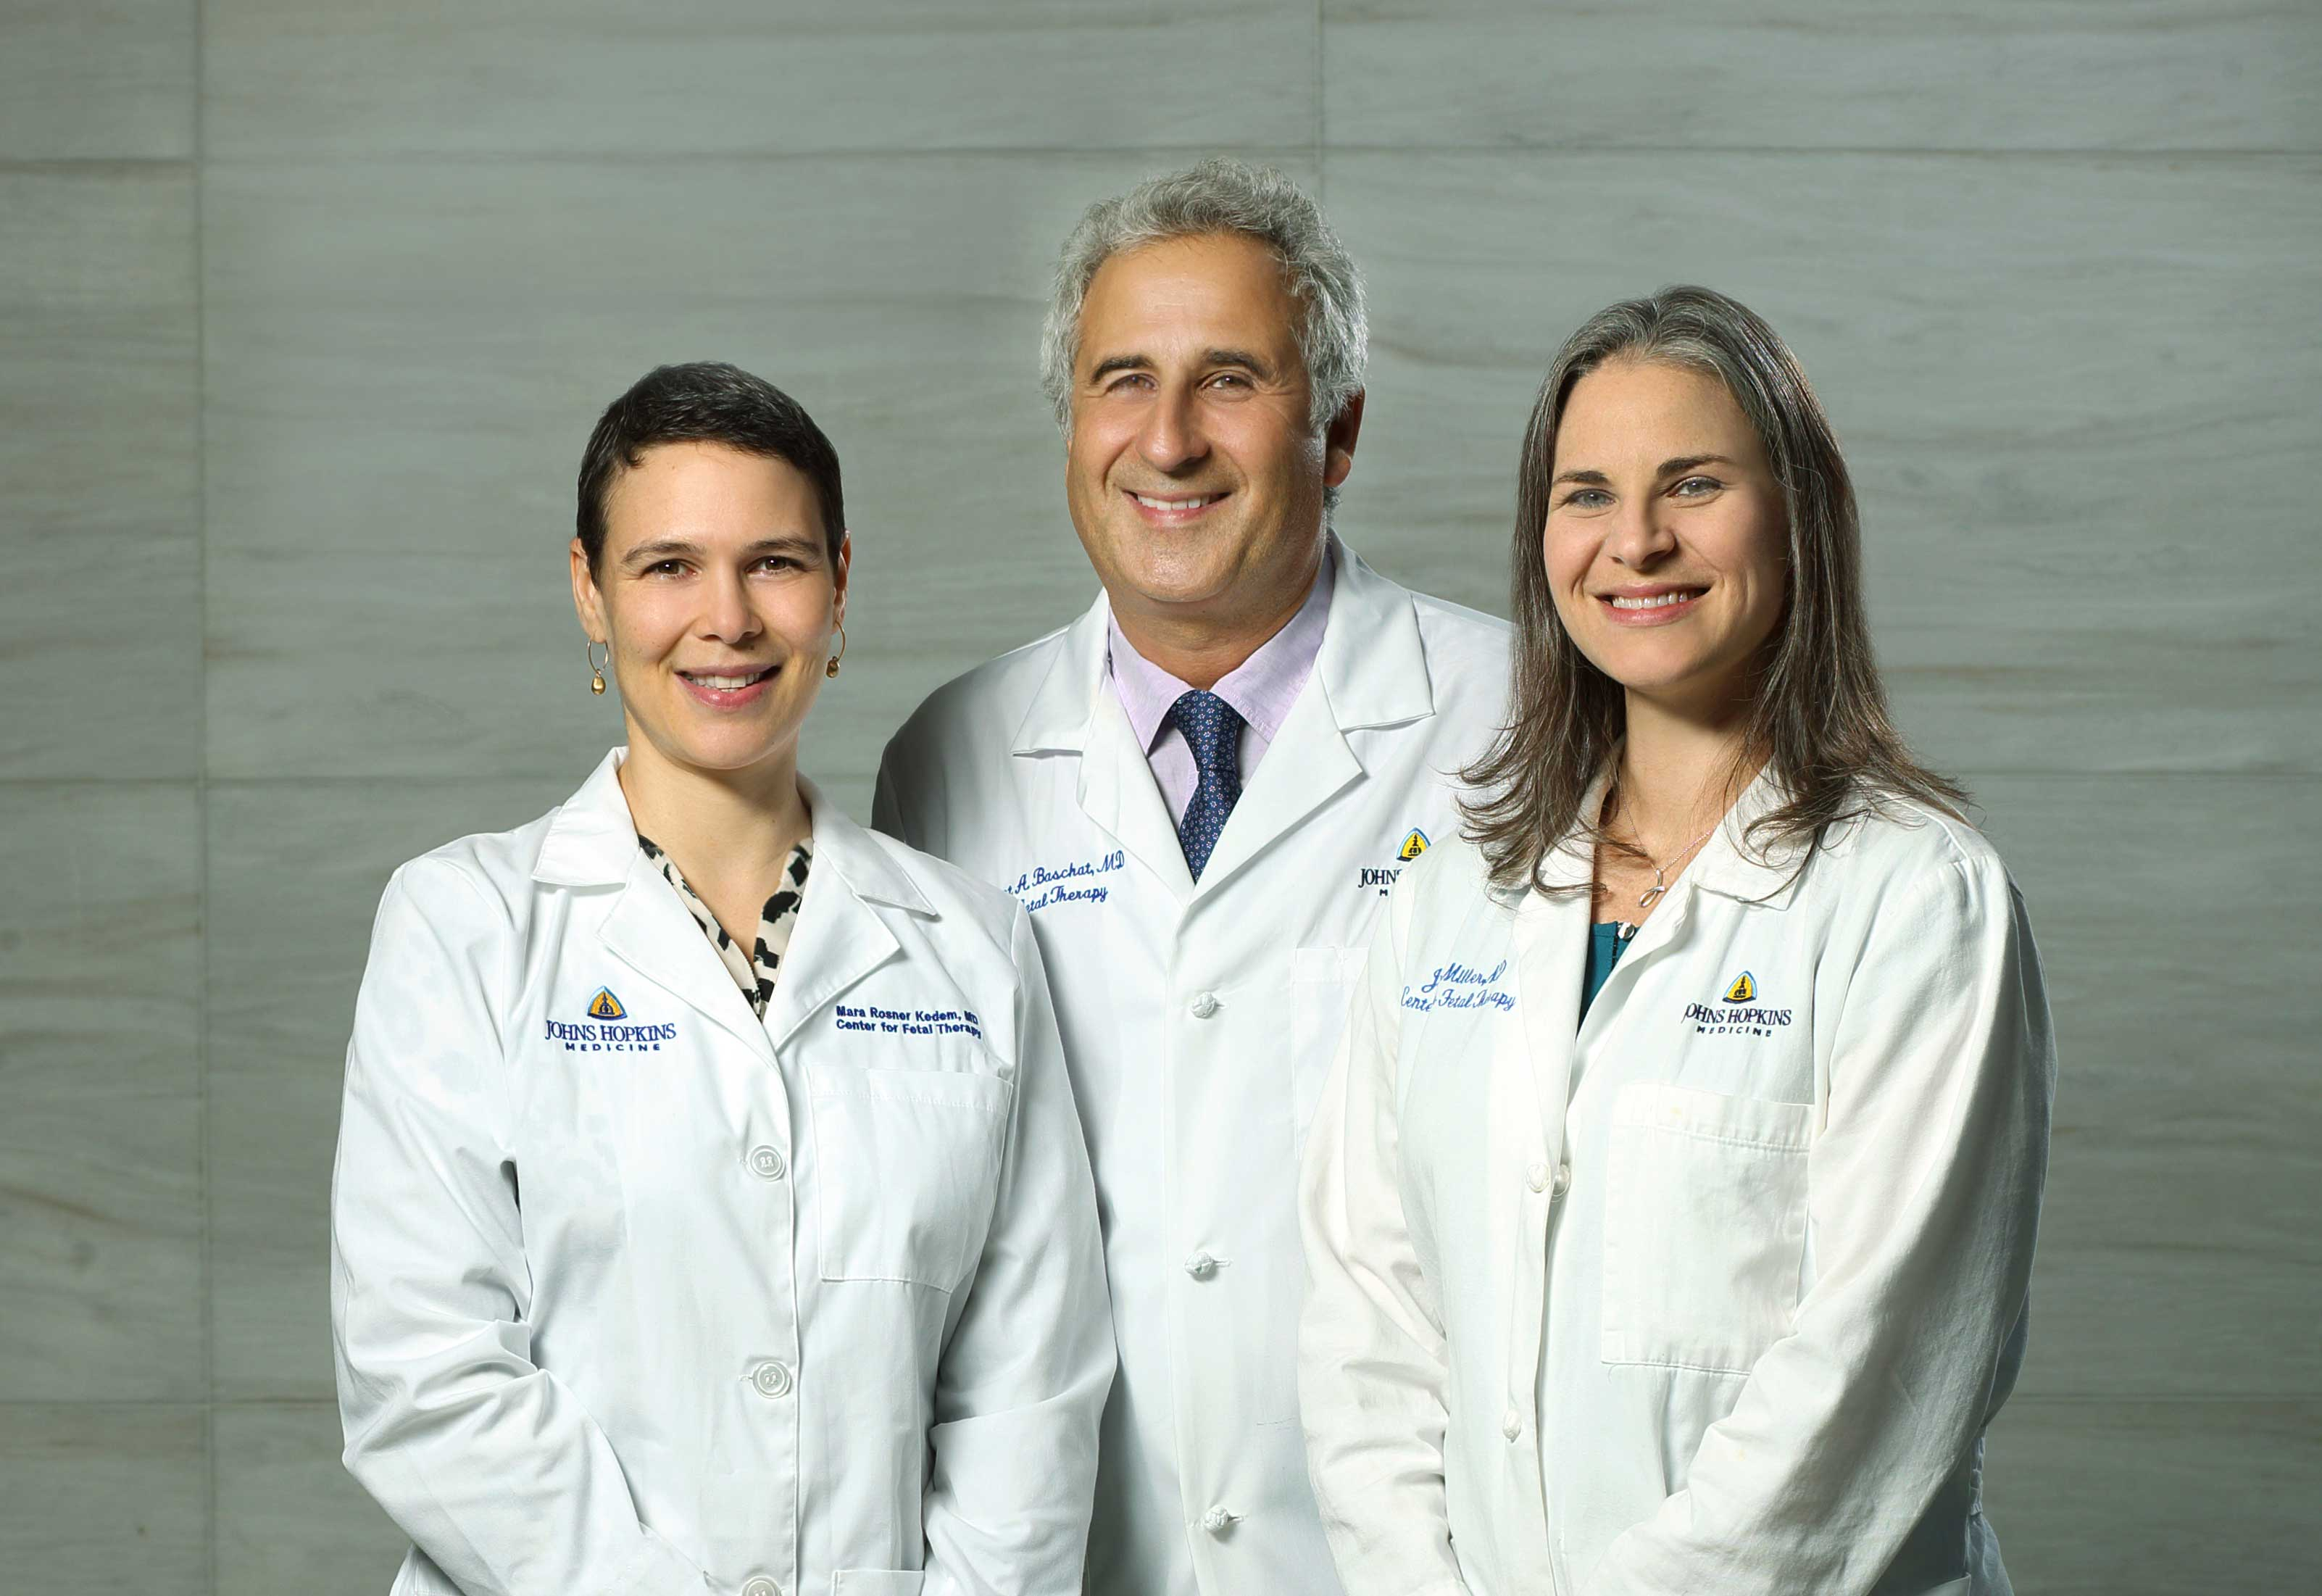 Drs Baschat, Miller, and Rosner of the Fetal Therapy Center